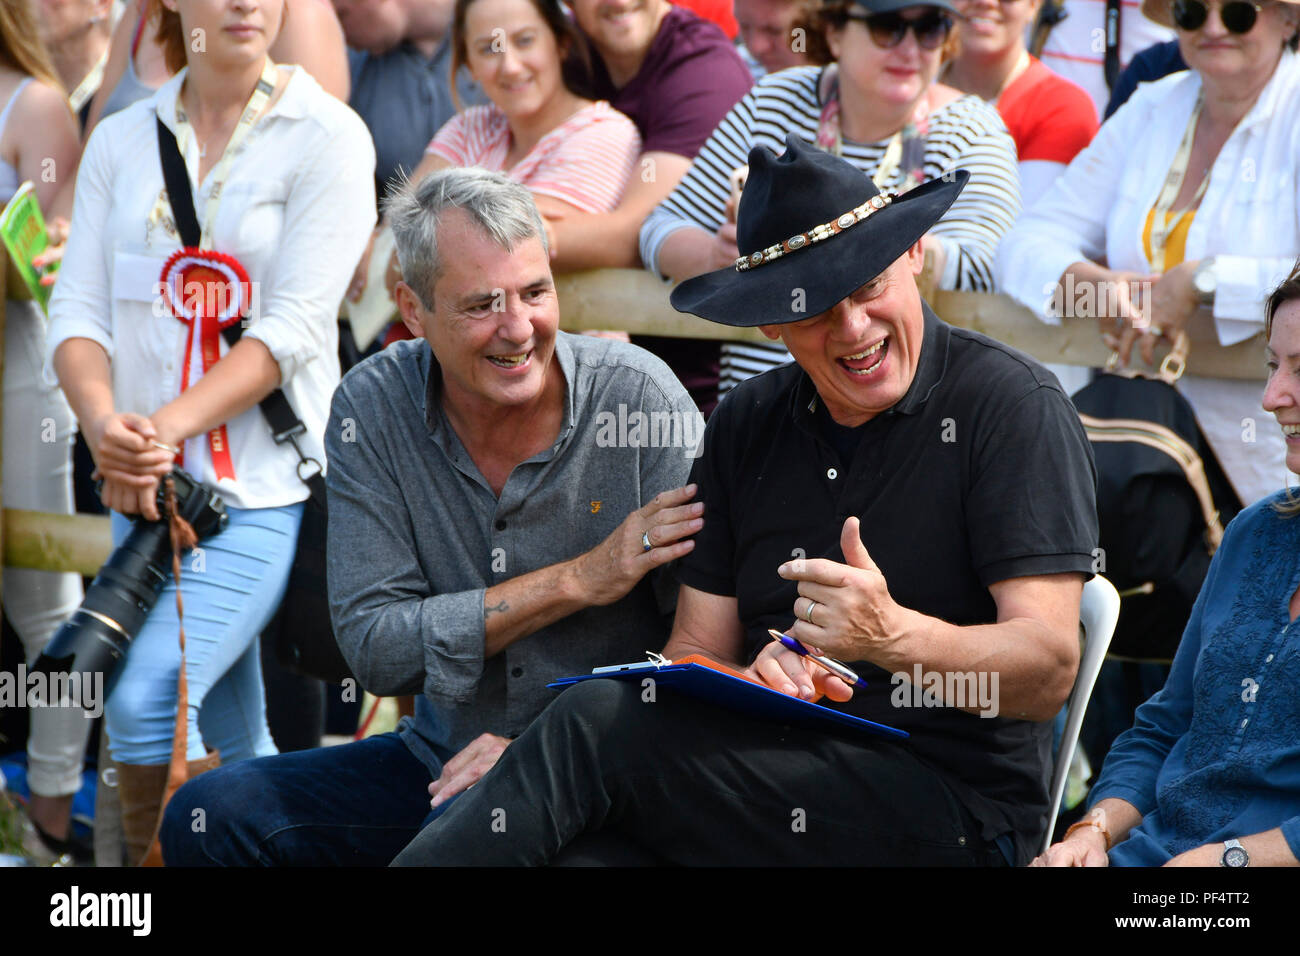 Beaminster, Dorset, UK.  19th August 2018. UK Weather.  Actor Martin Clunes is joined by his friend and fellow actor Neil Morrissey to judge the best dog trick at Buckham Fair at Beaminster, Dorset.  Picture Credit: Graham Hunt/Alamy Live News - Stock Image